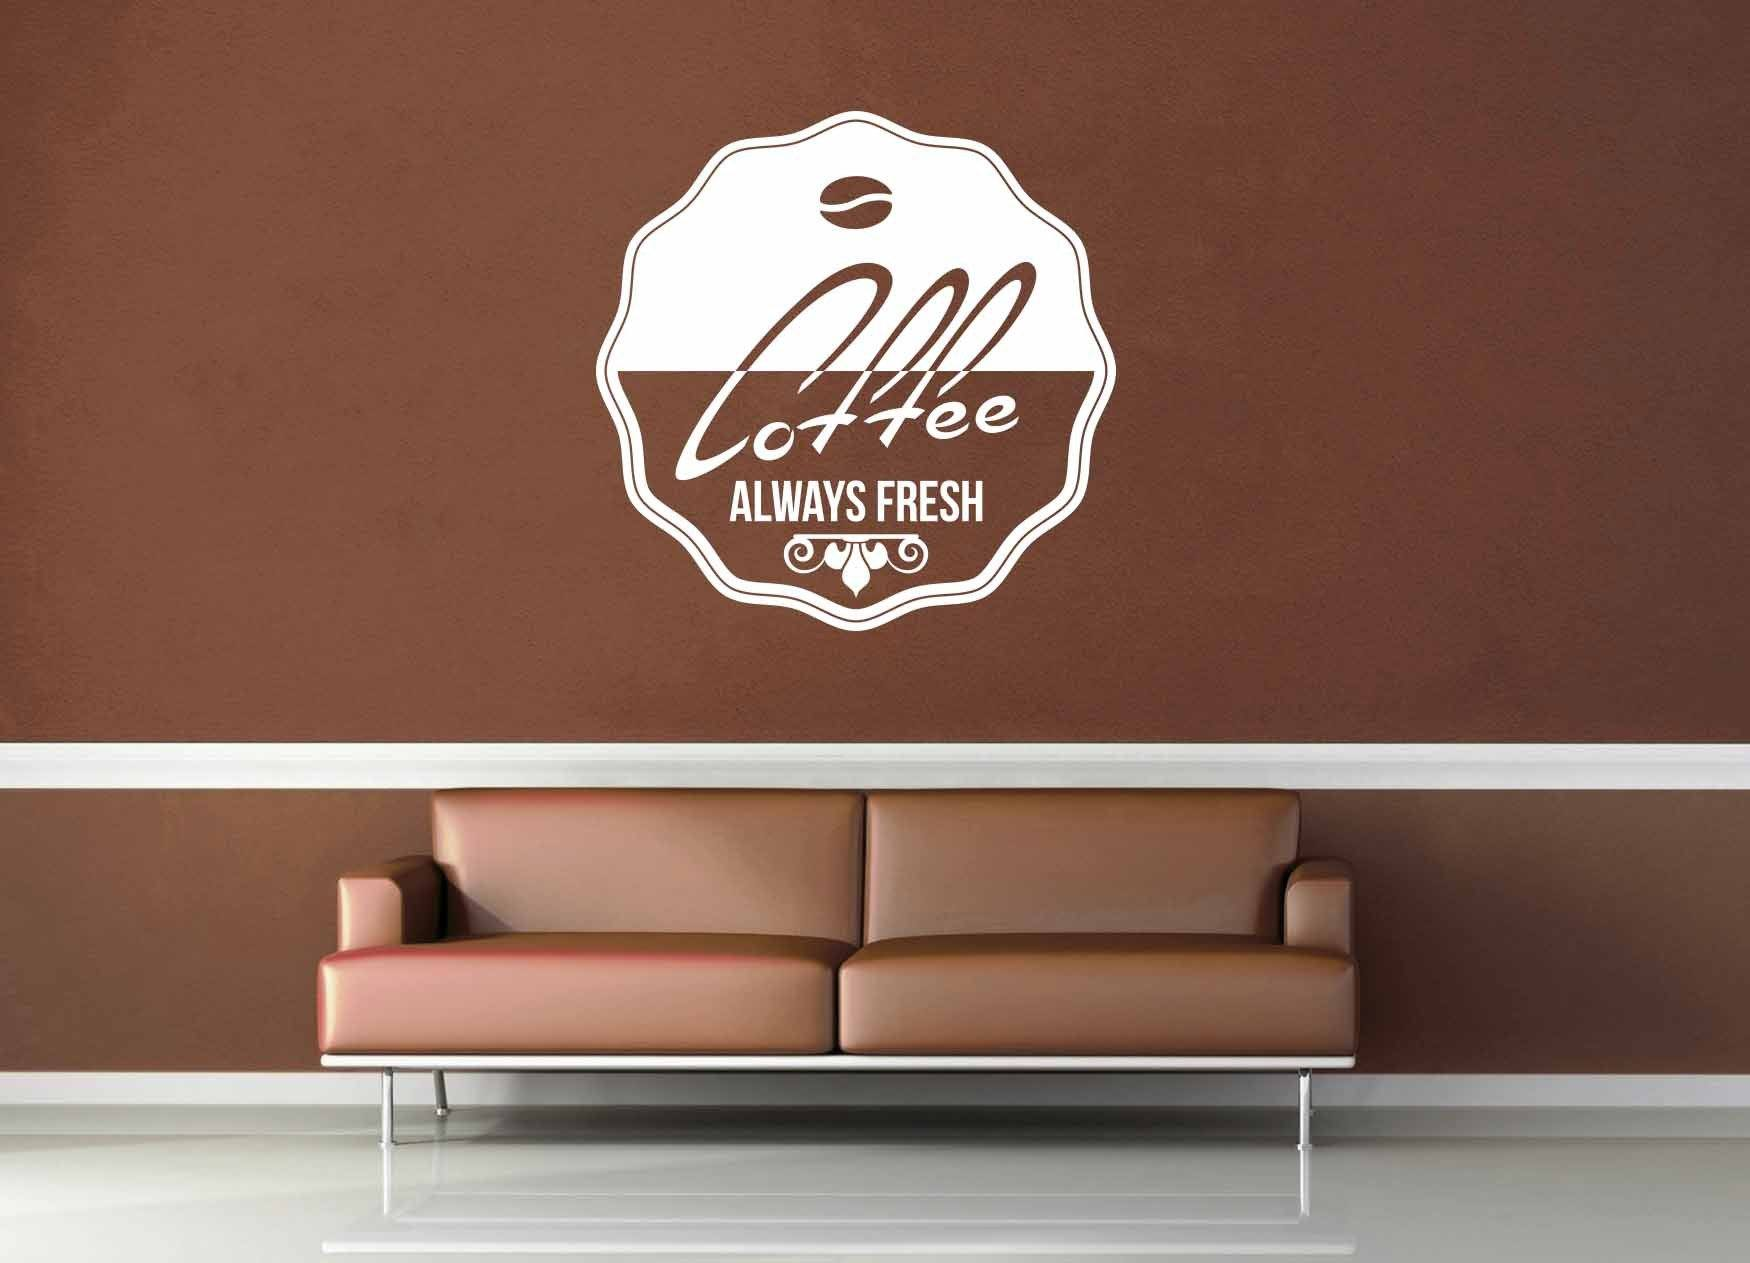 Always Fresh - Vintage Cafe Sign - Wall Decal - No 2